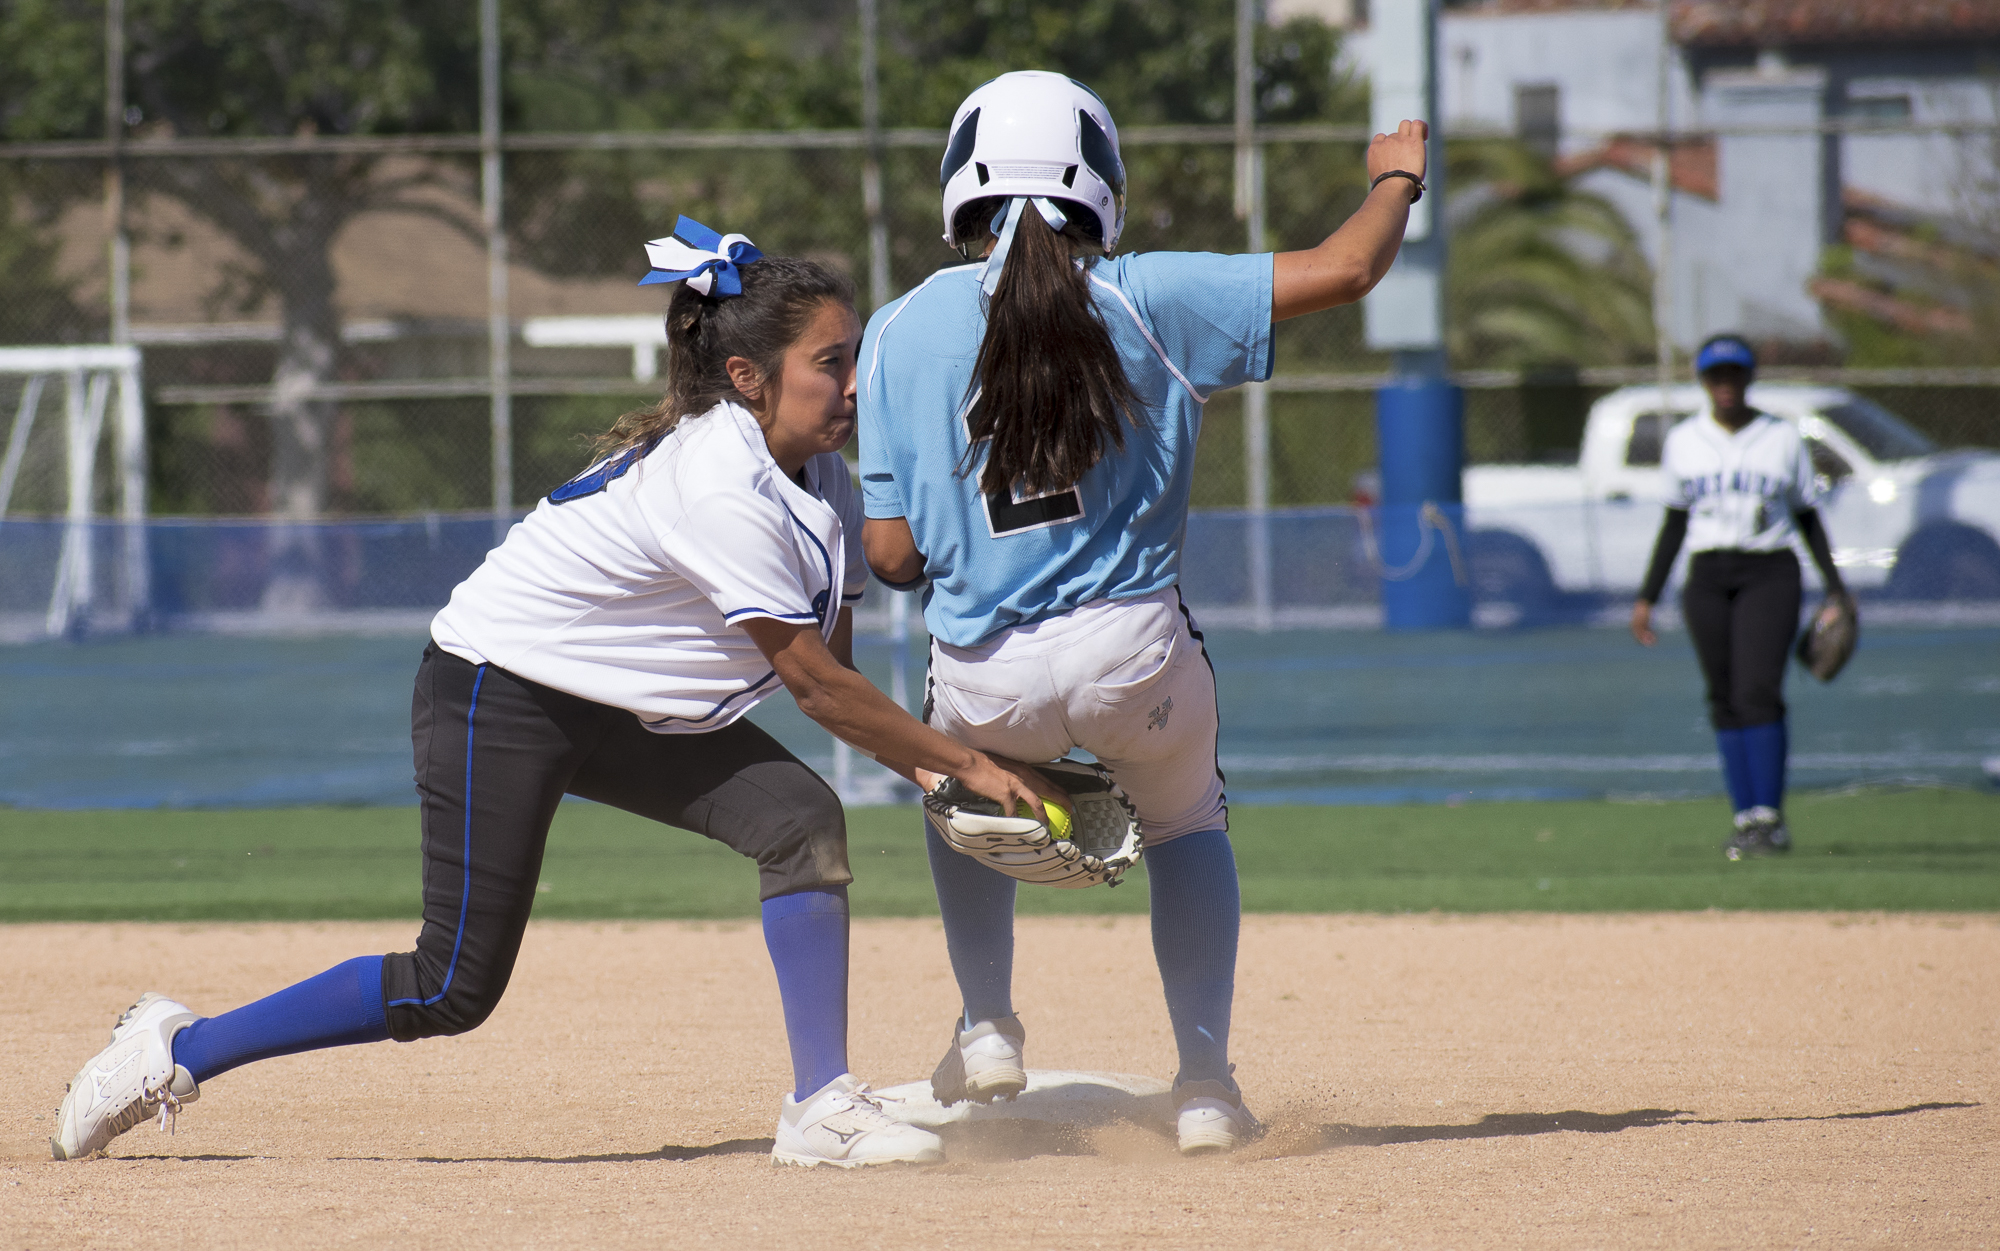 Santa Monica Corsairs Emma Soto (#80) defends the second base from Moorpark College Raiders Samantha Villa (#2) during a softball game on Tuesday, April 10 at the John Adams Middle School Field in Santa Monica, California. The game ended with an 11-8 loss for the Corsairs, further continuing their six-game loss. (Ethan Lauren/Corsair Photo)